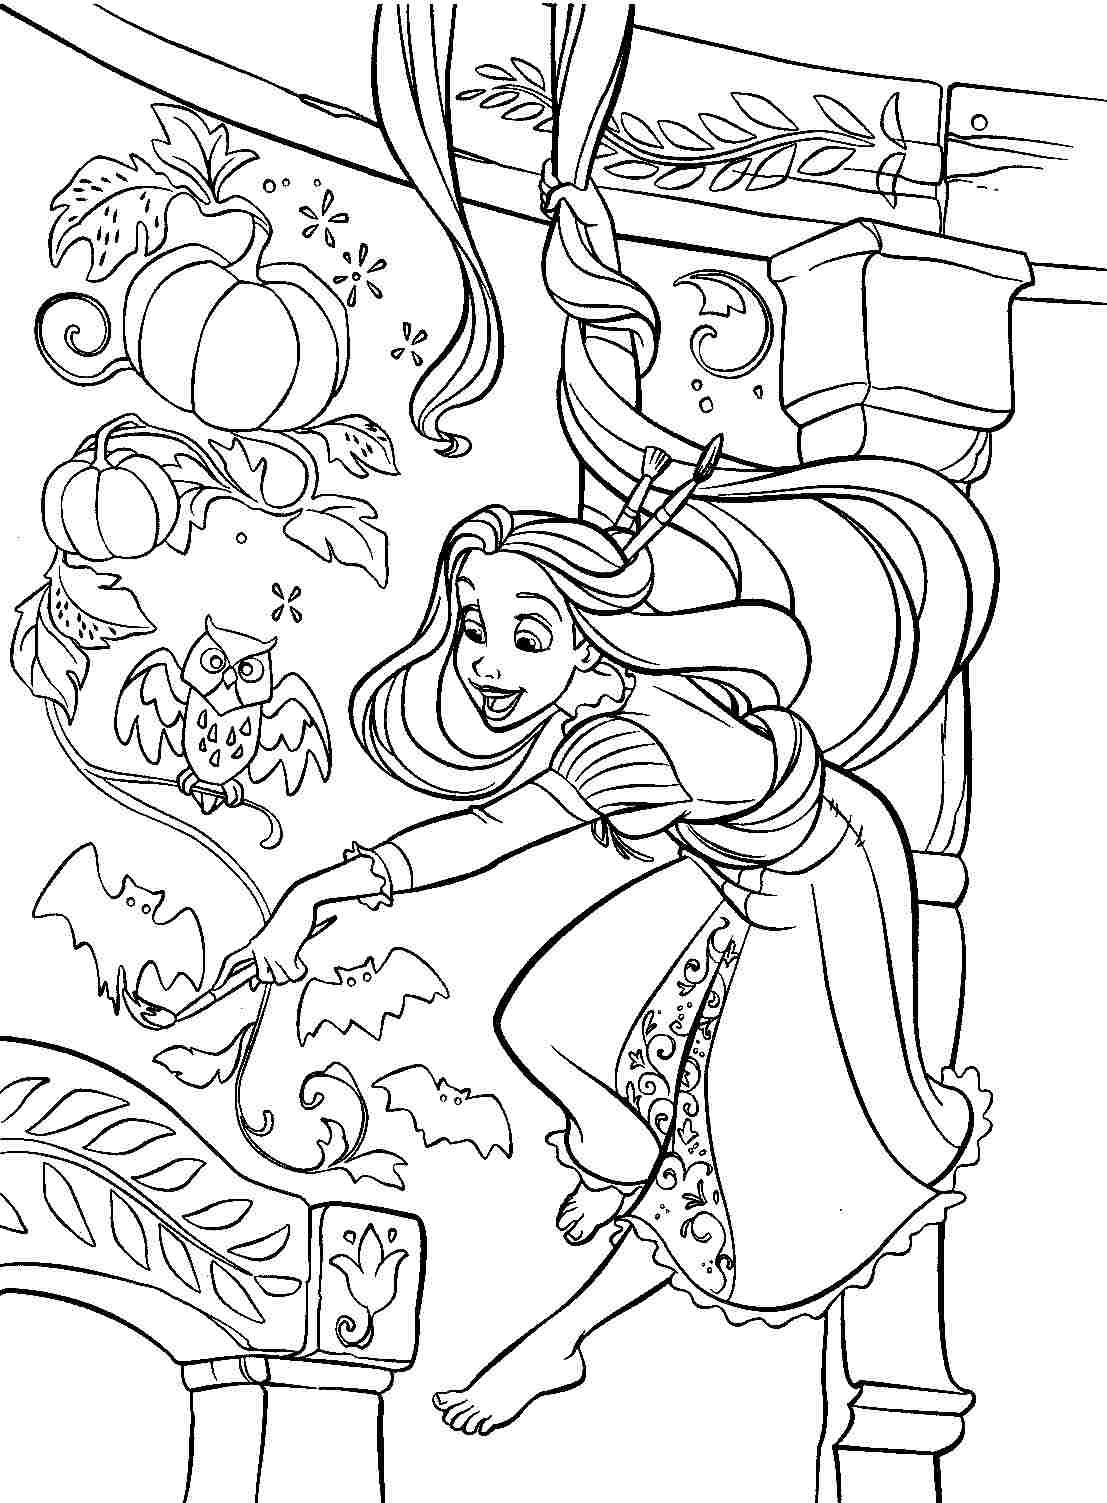 Disney princess coloring book for adults - Free Printable Coloring Pages Disney Princess Tangled Rapunzel For Kids Girls